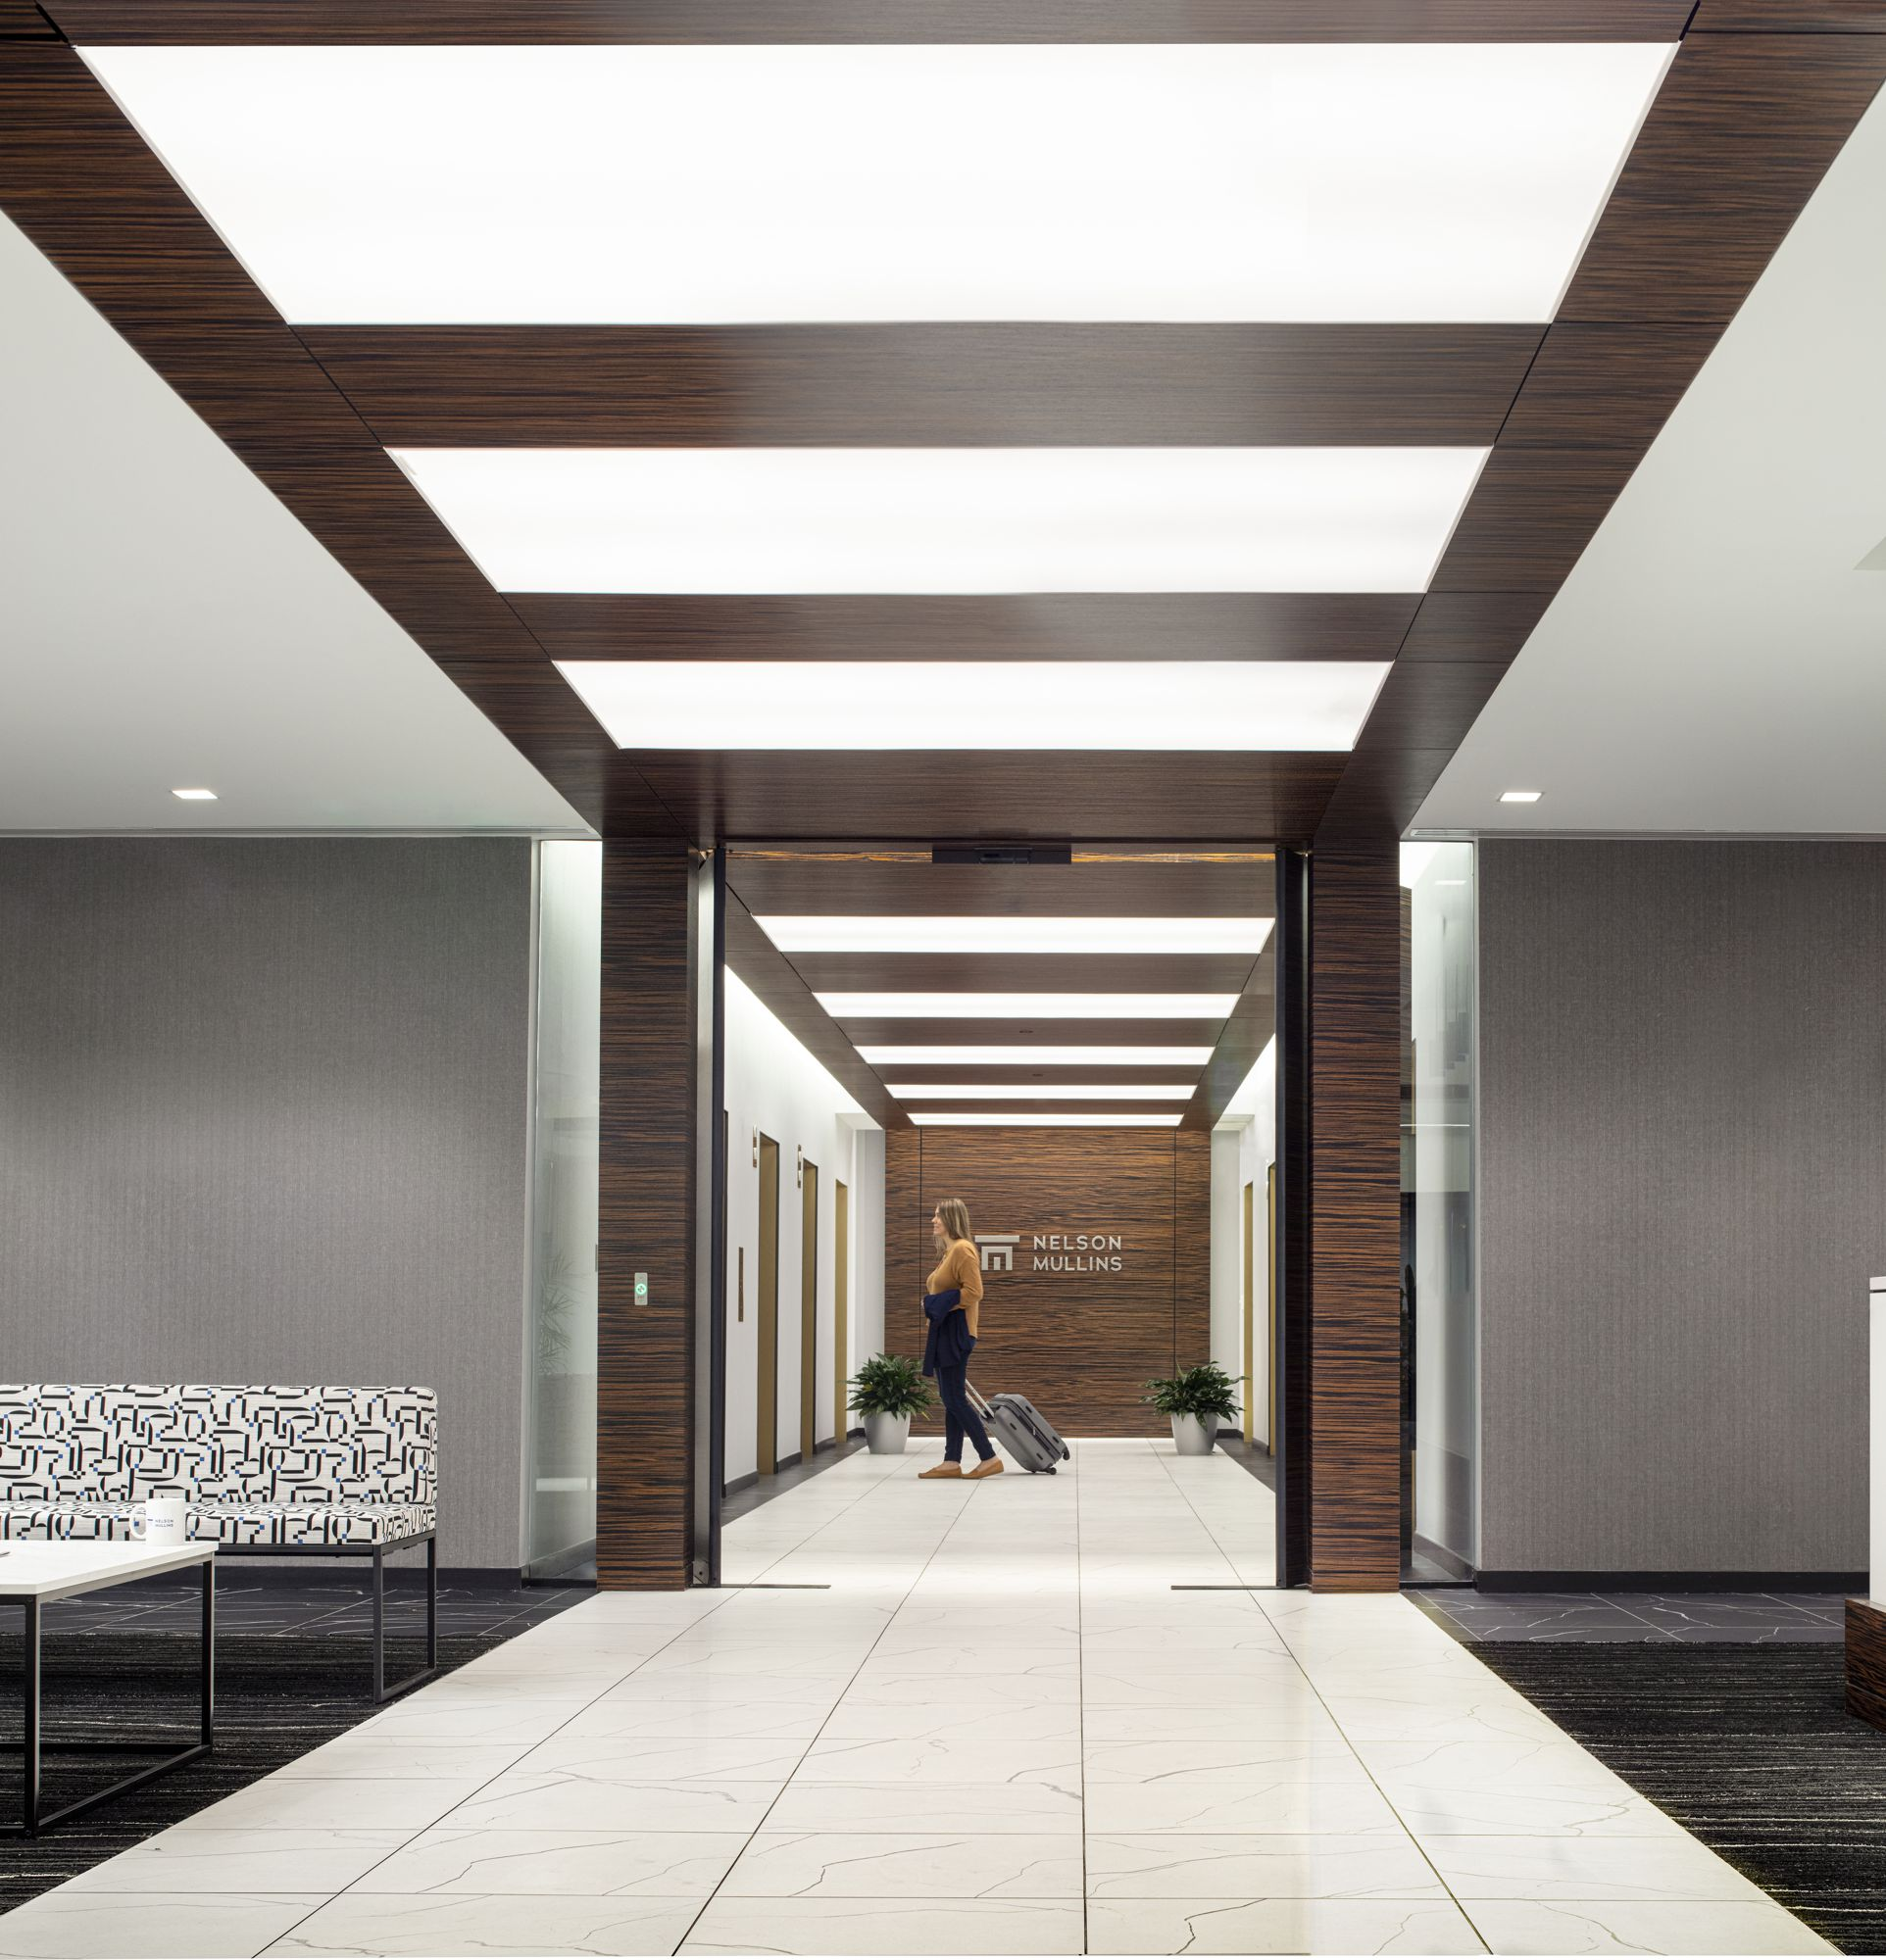 The lobby carries the ebony wood ceiling and backlit panels into the building core to reinforce the full-floor experience.